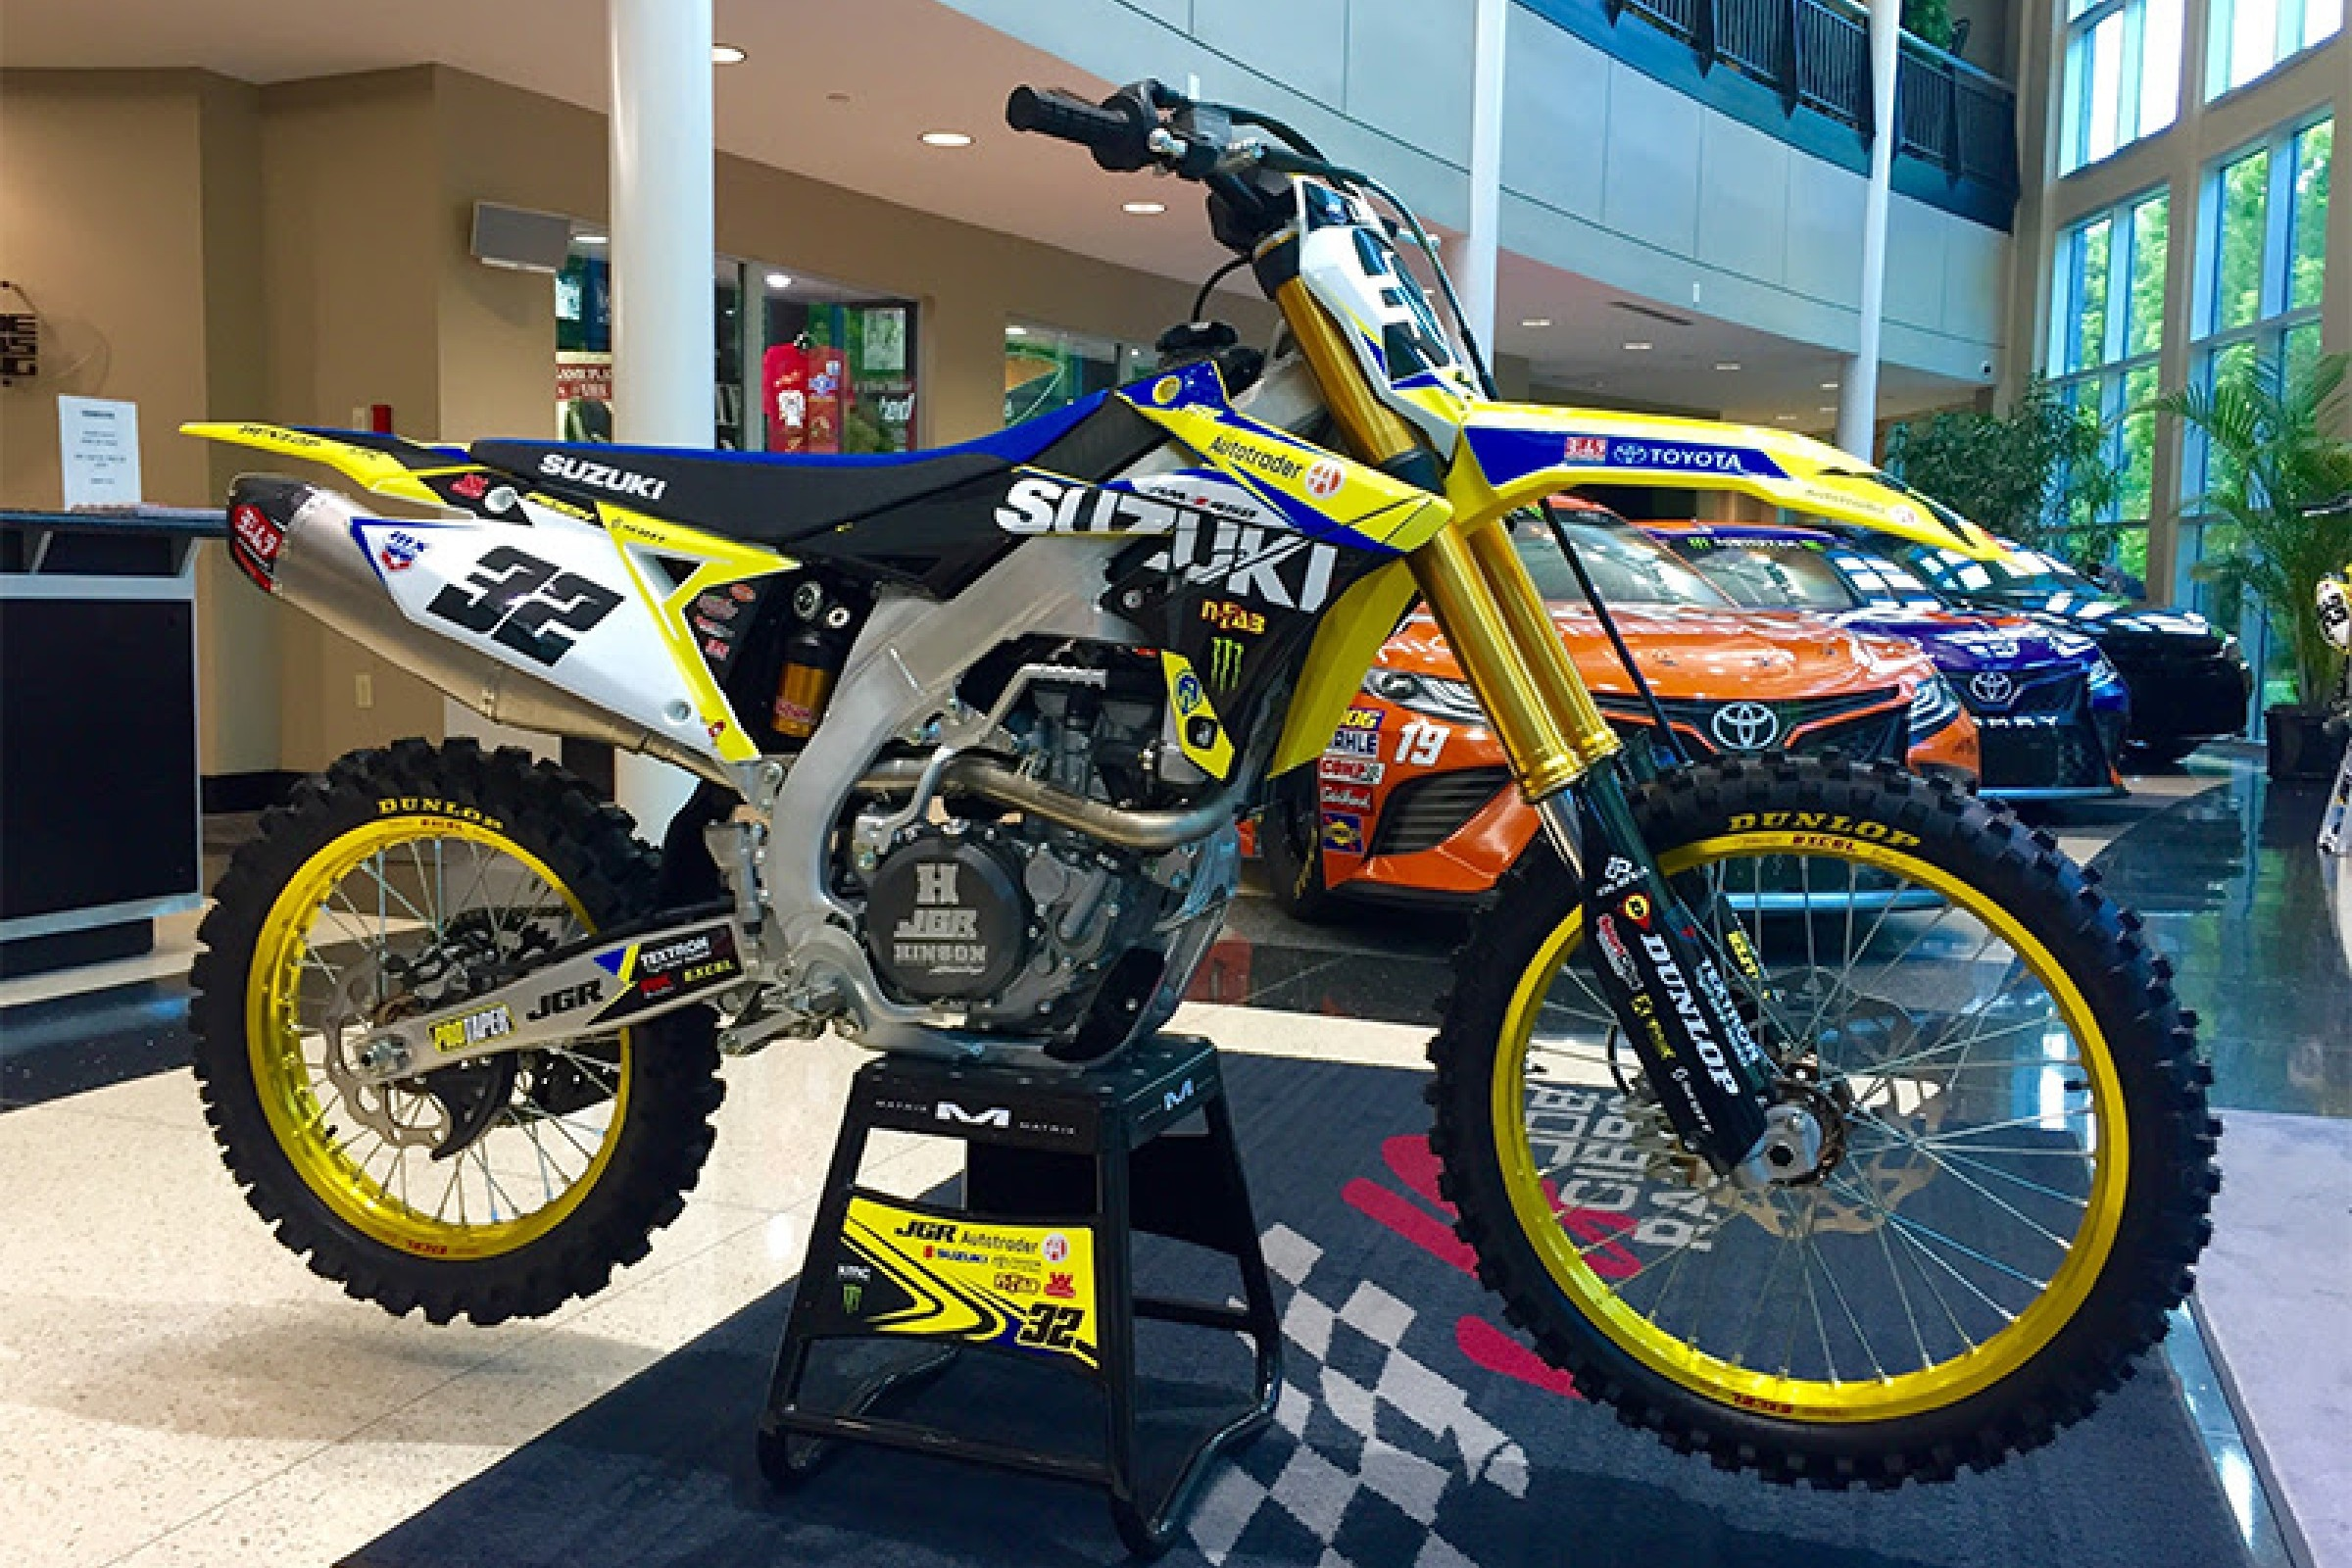 Jgr To Take Over As Official Factory Suzuki Team Racer X